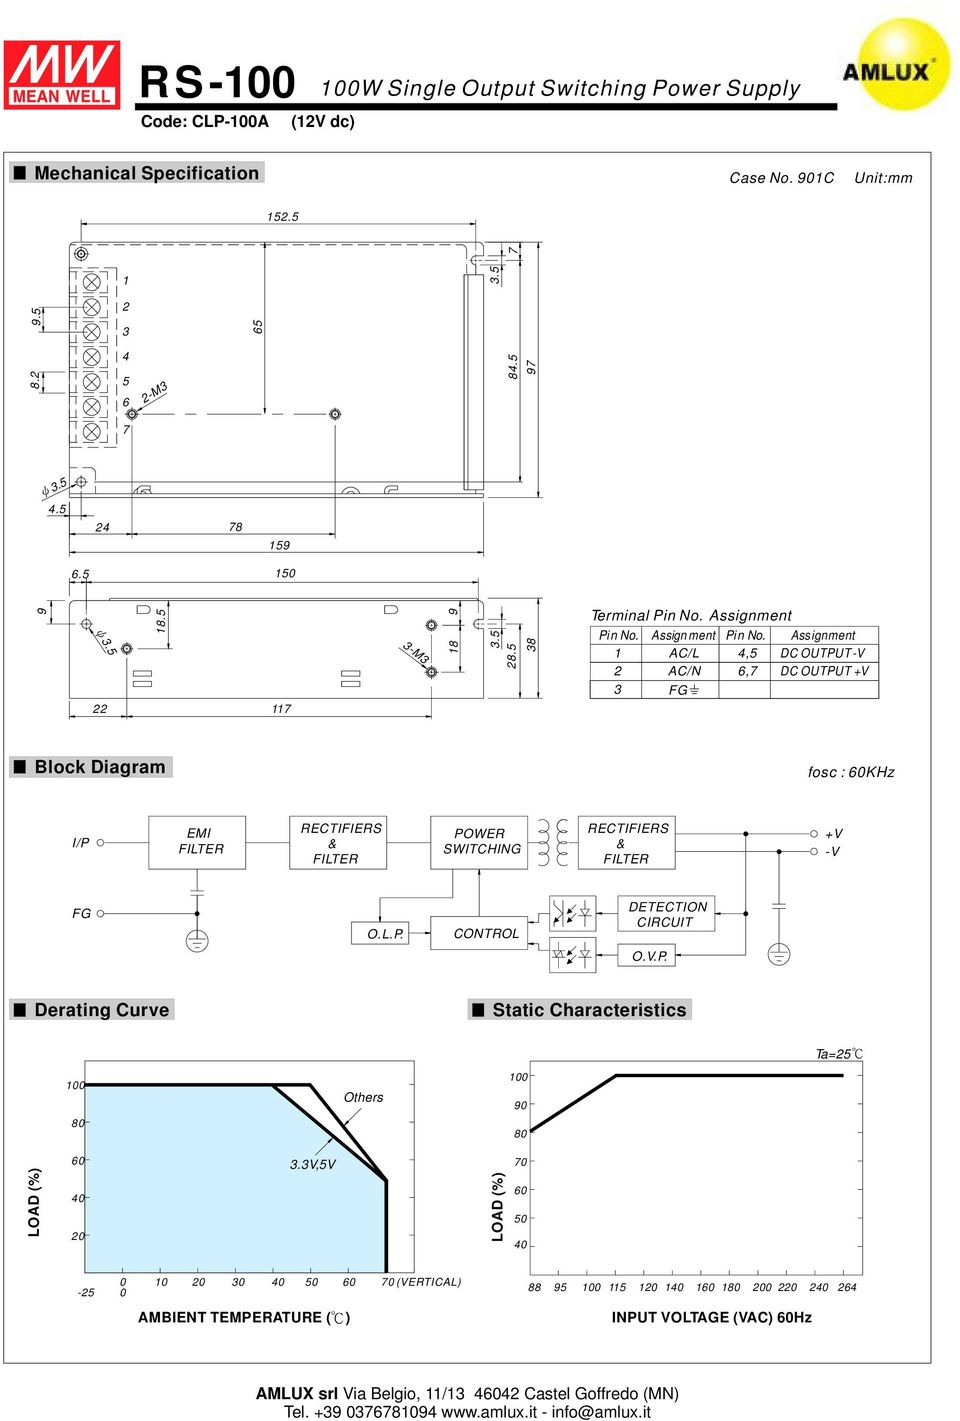 Single Output Switching Power Supply Pdf Block Diagram Dc Assignment Ac L N 67 V